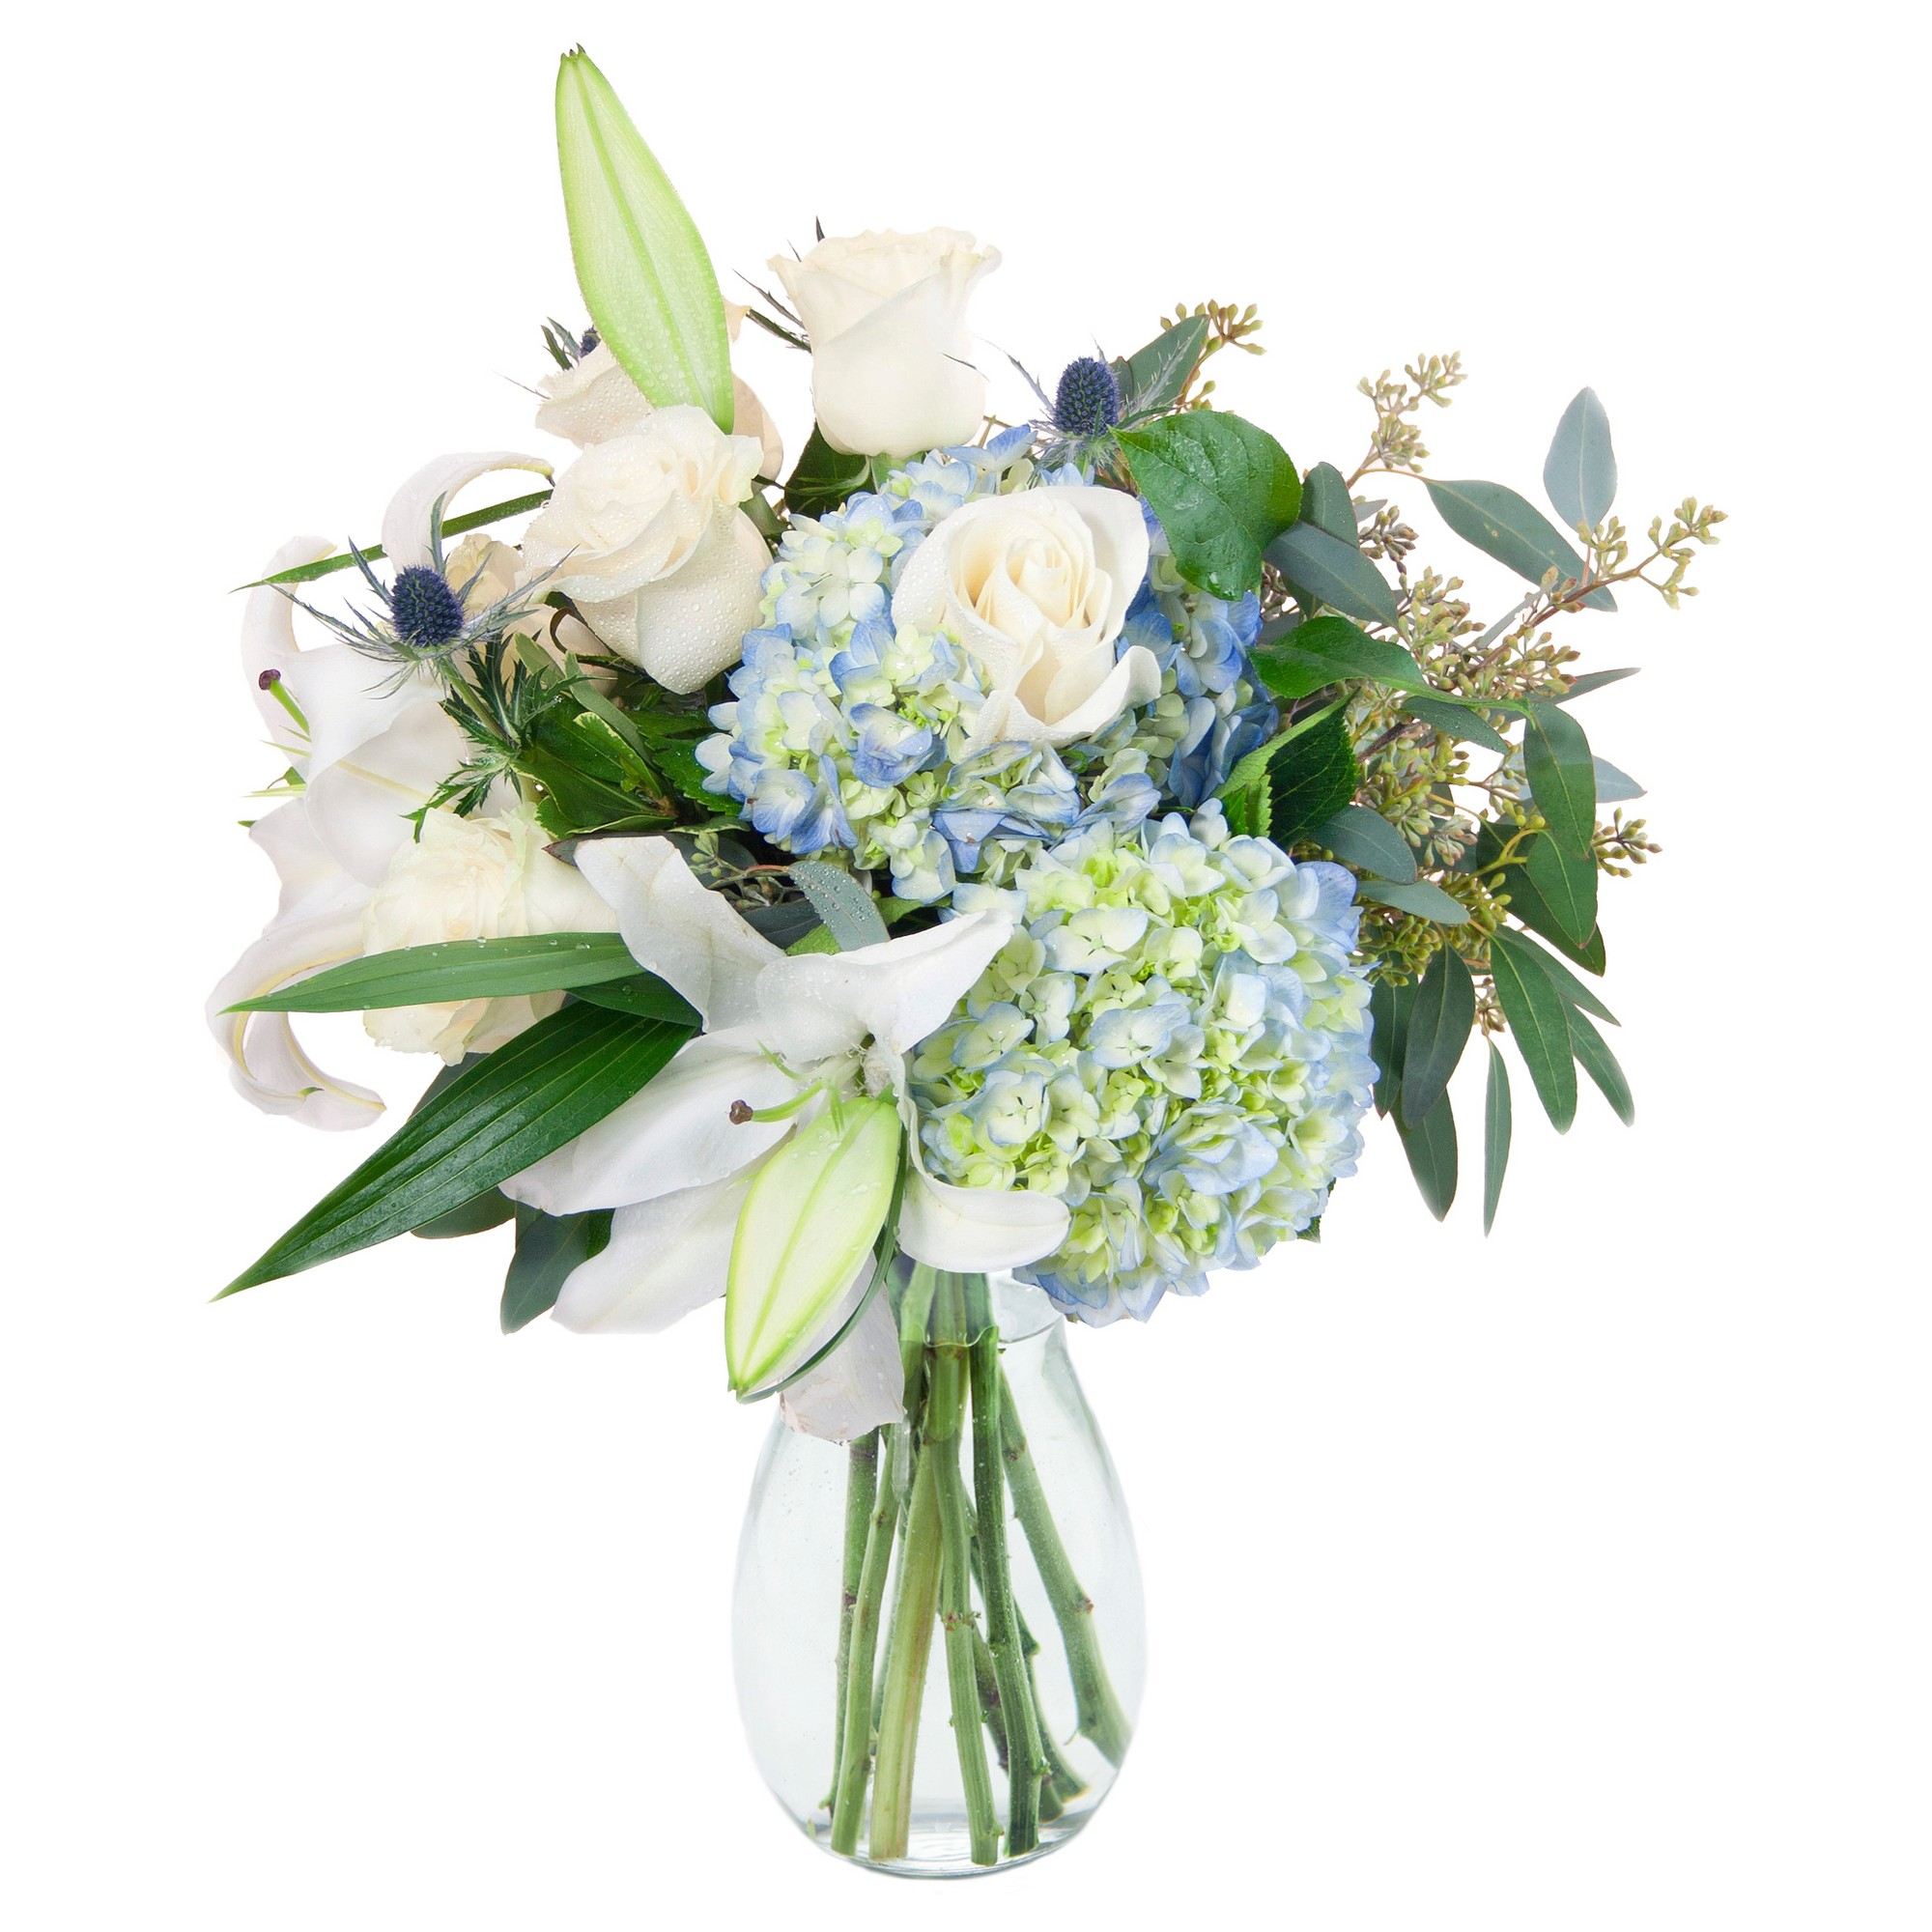 Kabloom Over The Moon Lily And Hydrangea Fresh Flower Arrangement